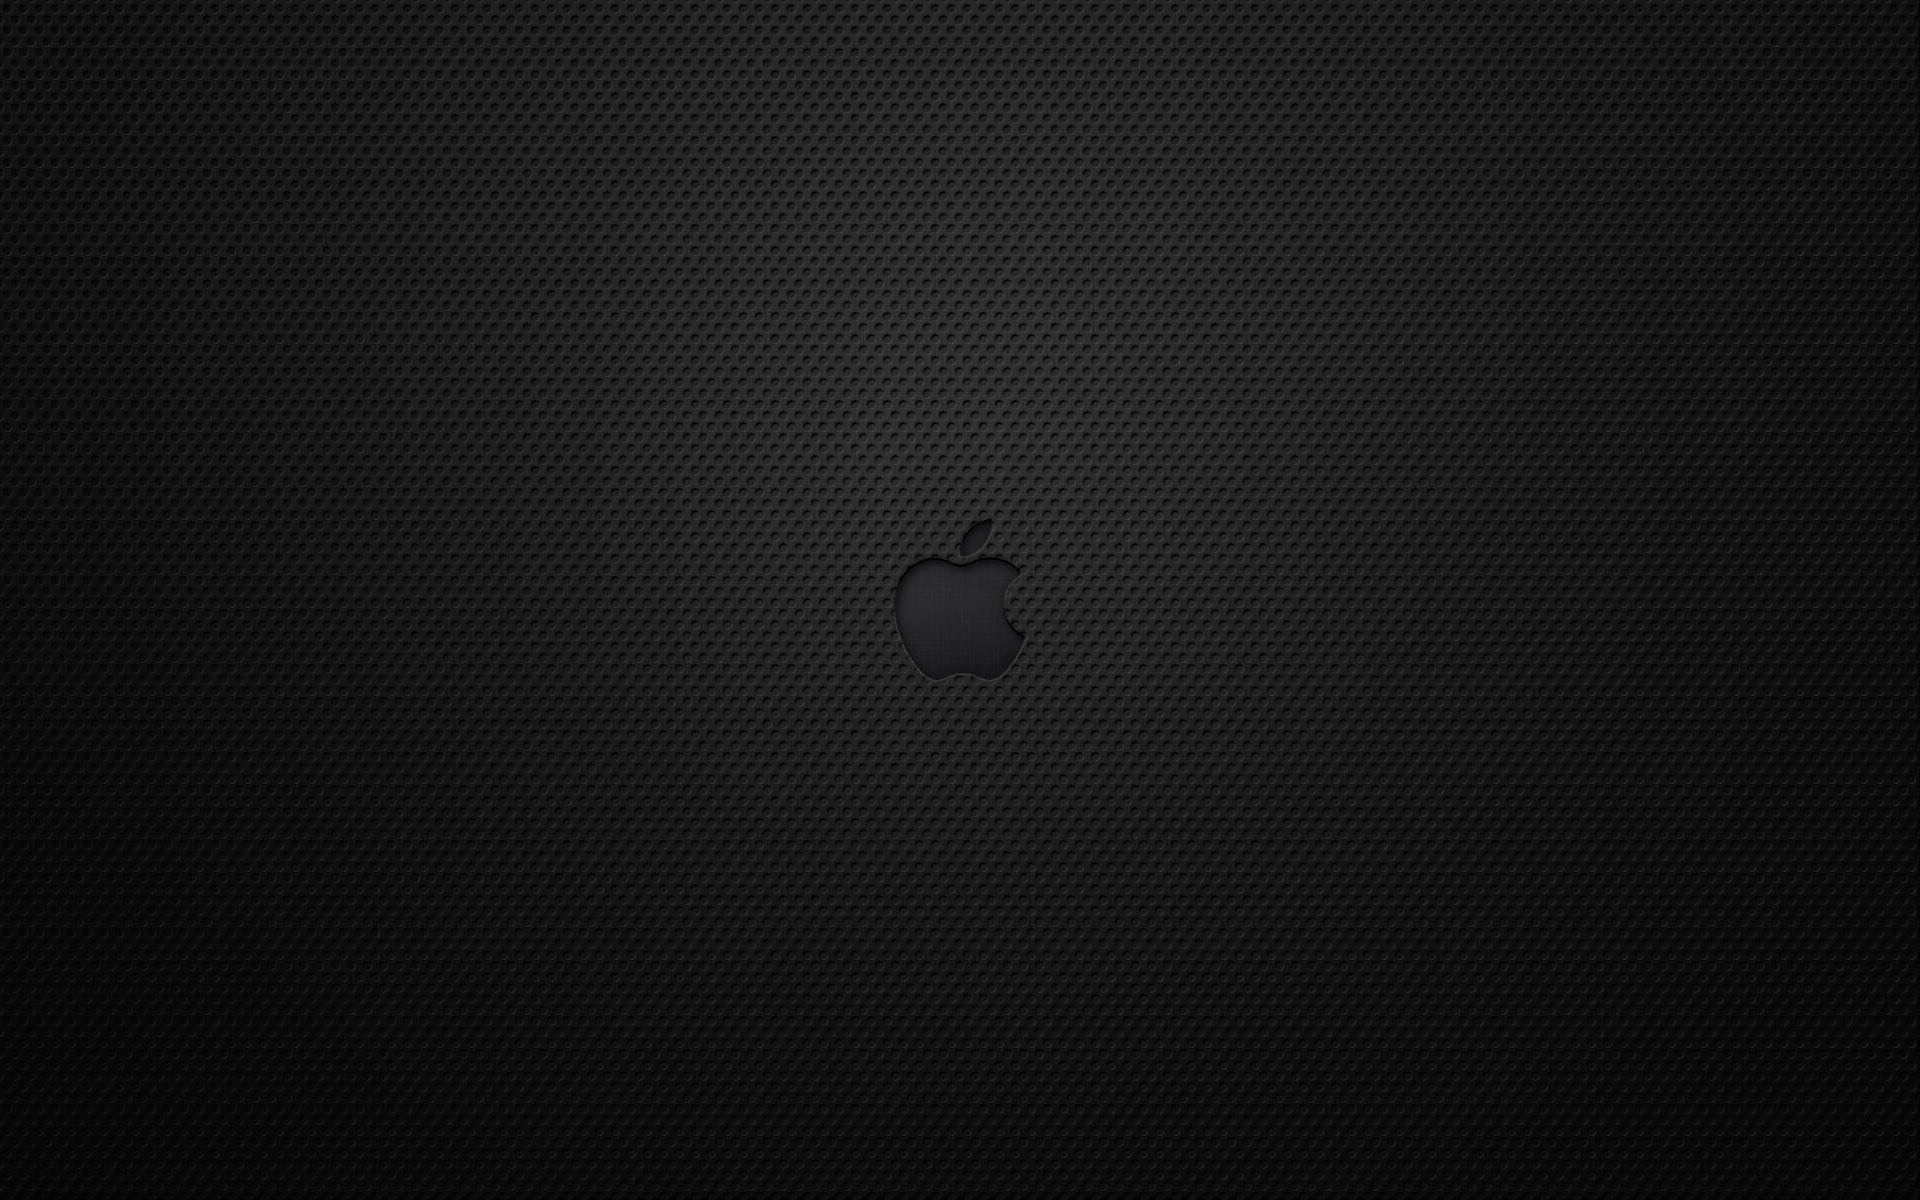 Mac Background Pictures 69 Images